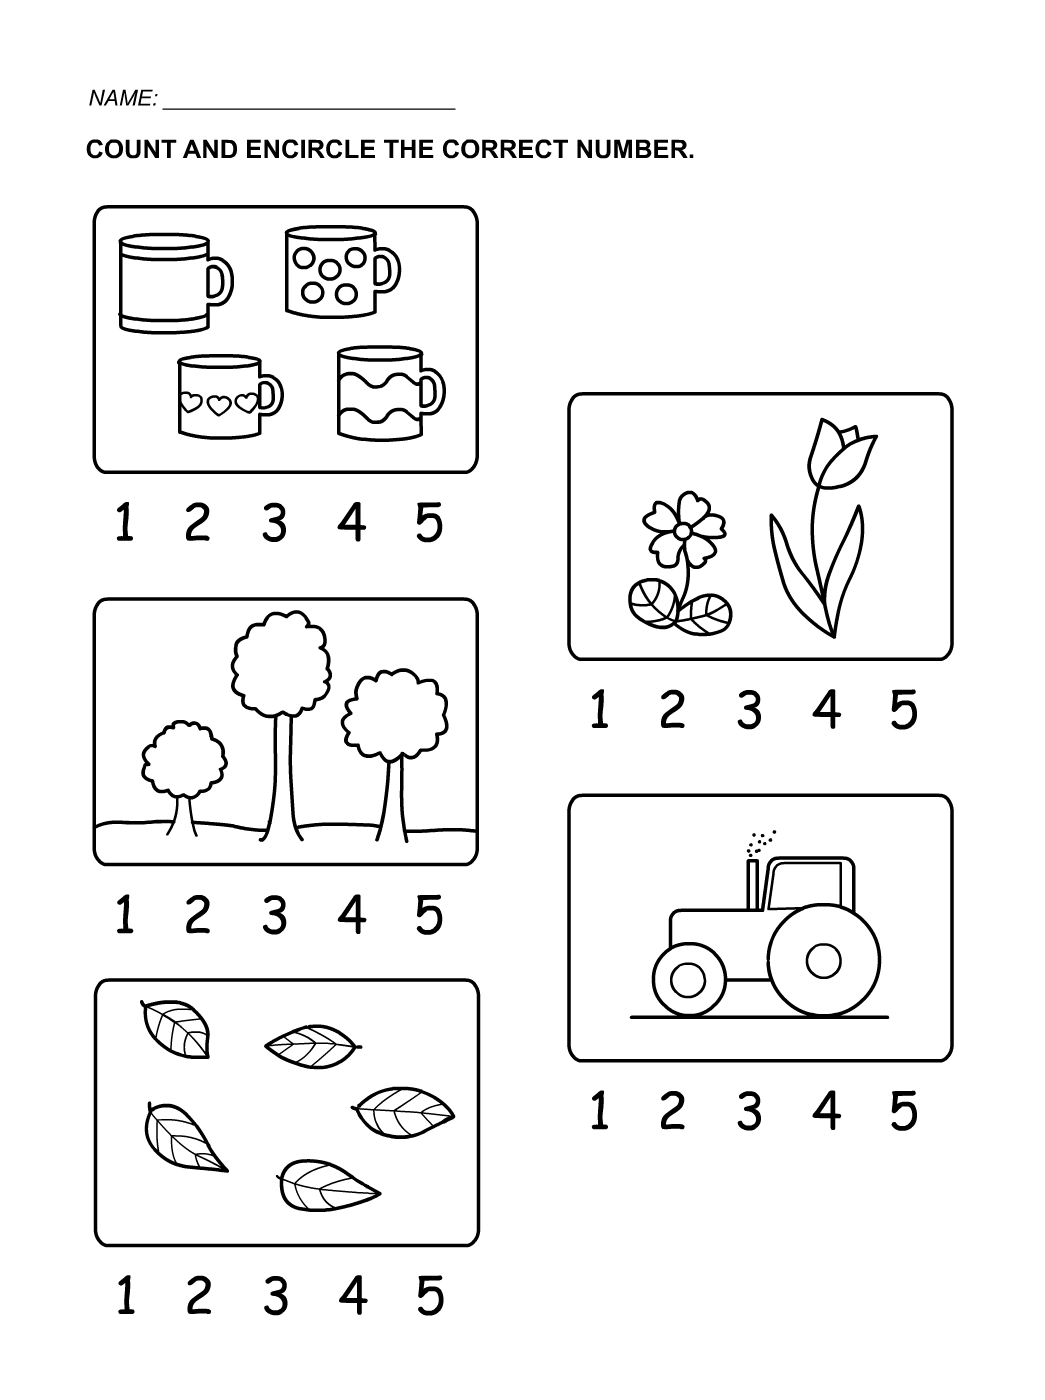 tracing numbers 1-5 count | math | Pinterest | Kid activities, Count ...